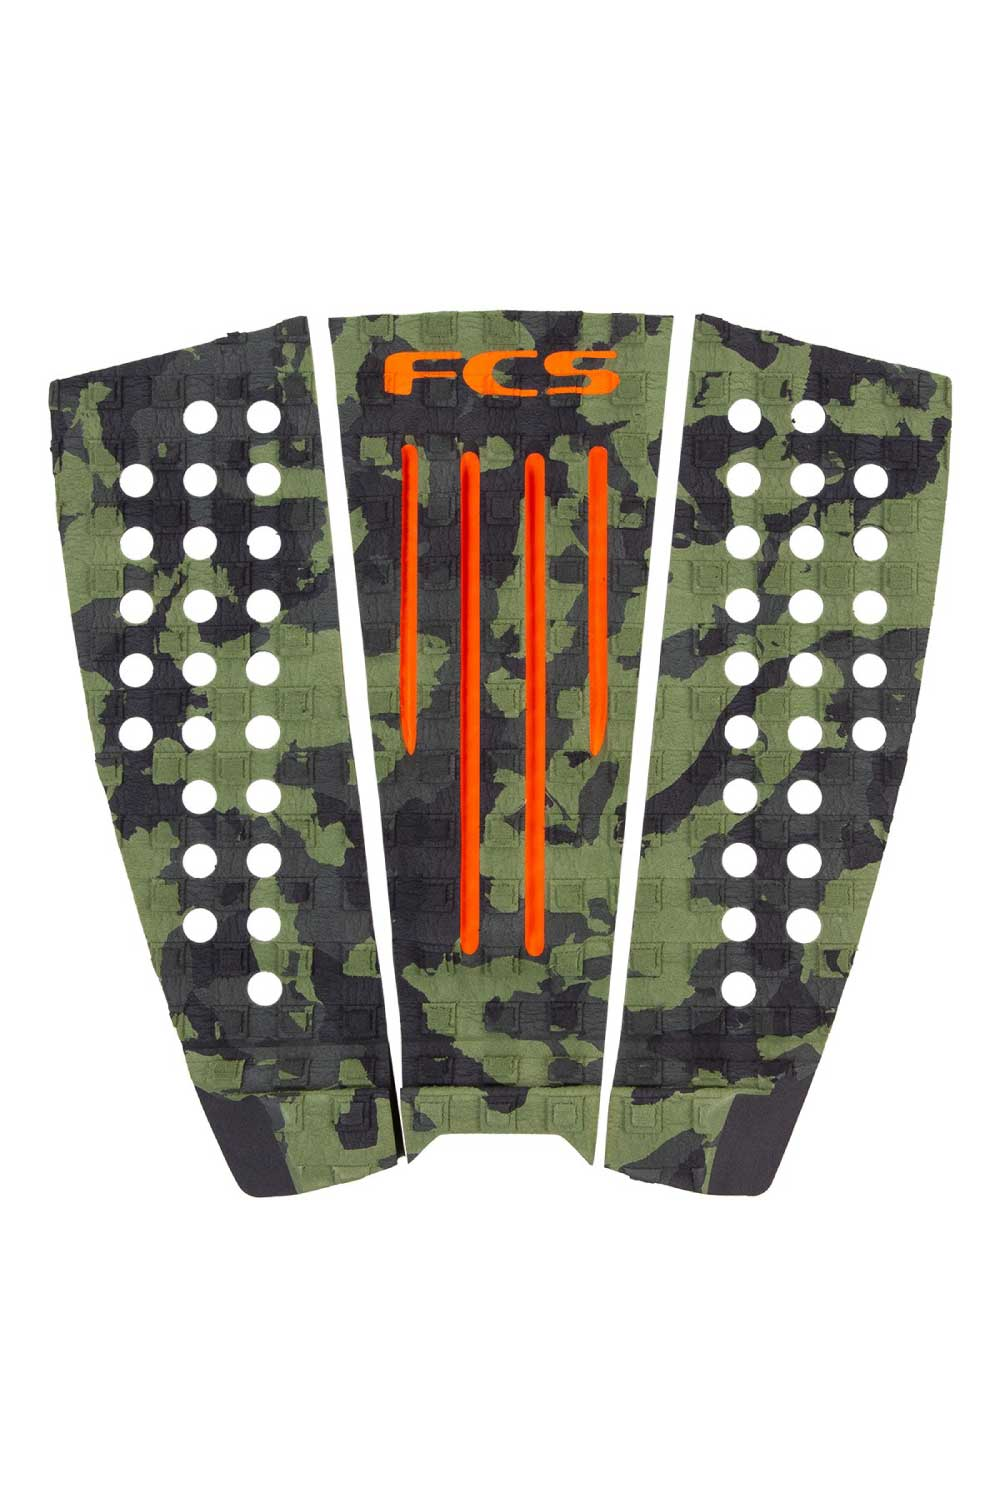 FCS Julian Wilson GROM Tail Pad Traction